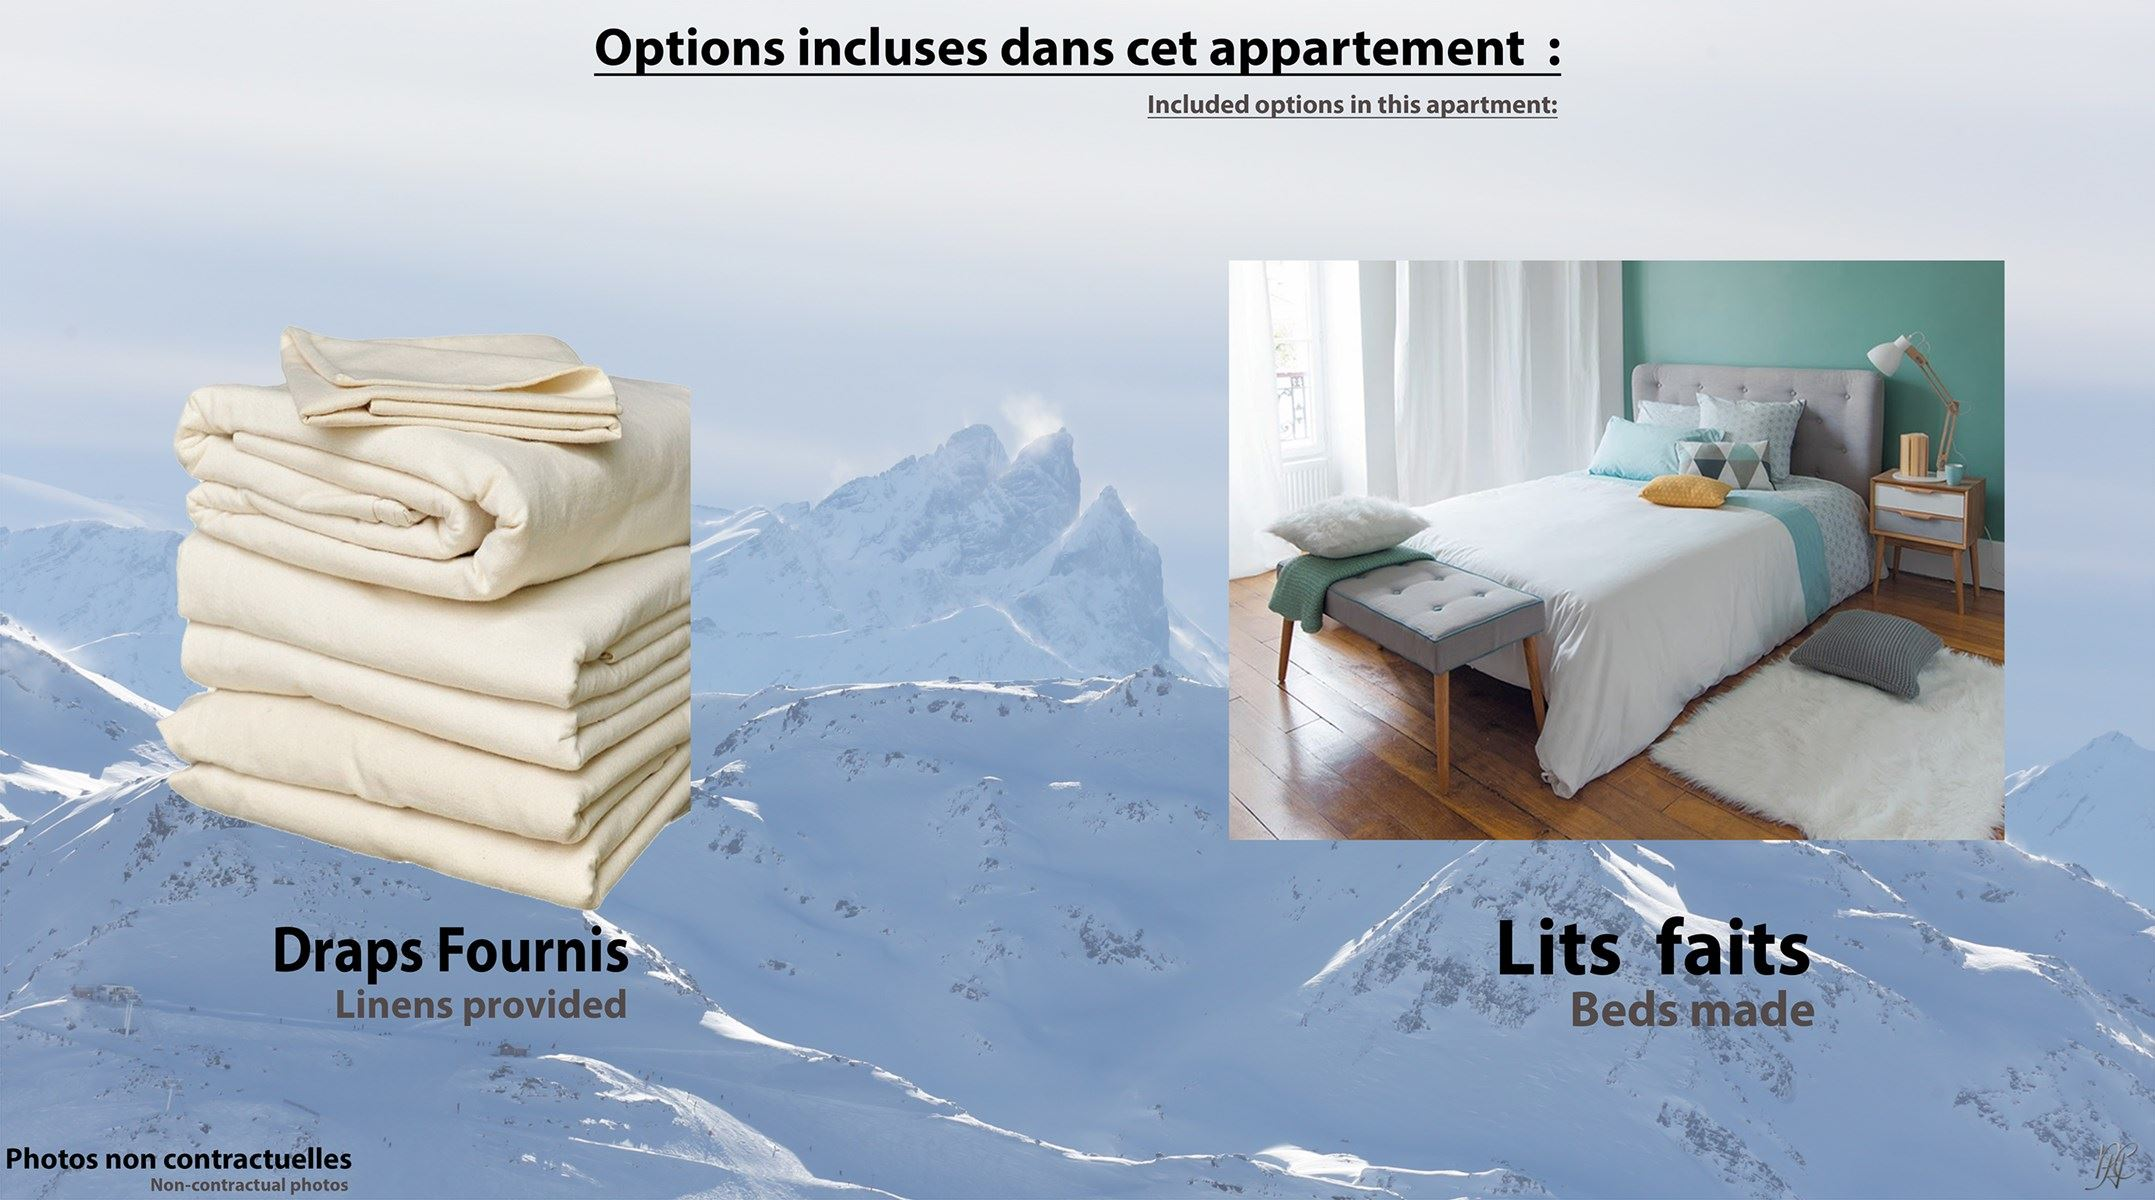 NEVES 178 / APPARTEMENT 3 PIECES 6 PERSONNES - 4 FLOCONS OR - ADA